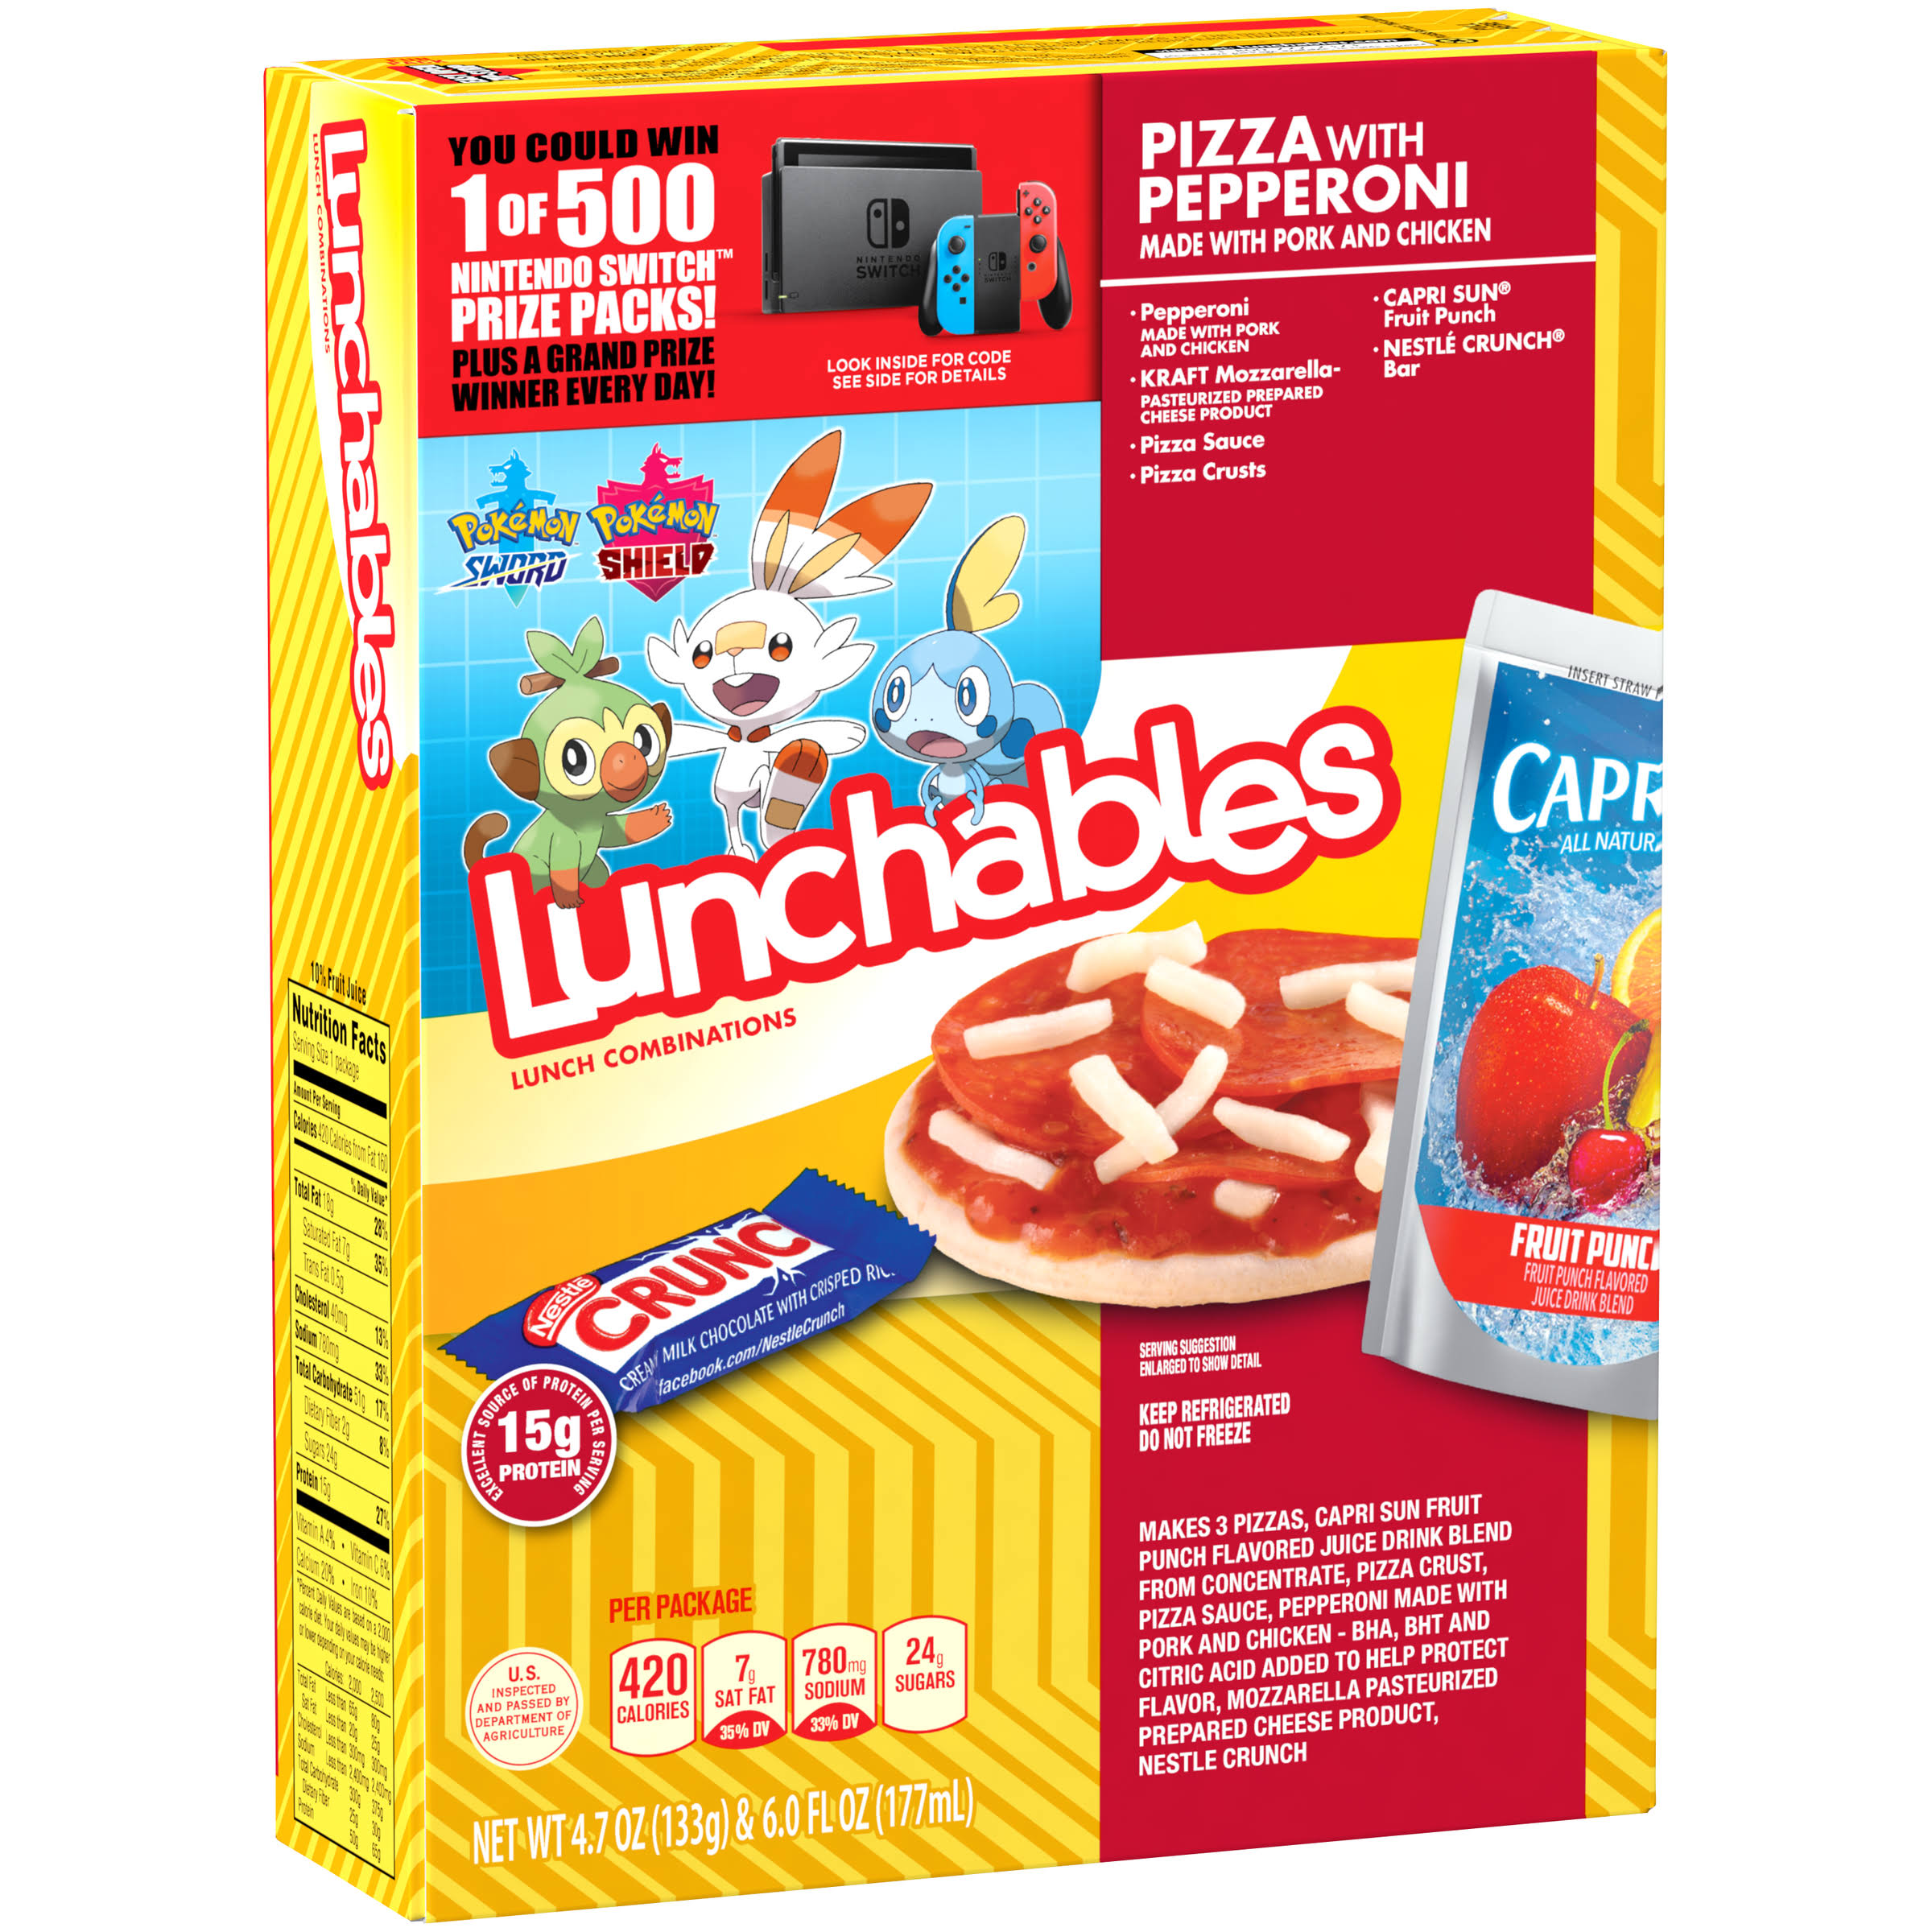 Lunchables Pizza With Pepperoni Lunch Combination - 177ml